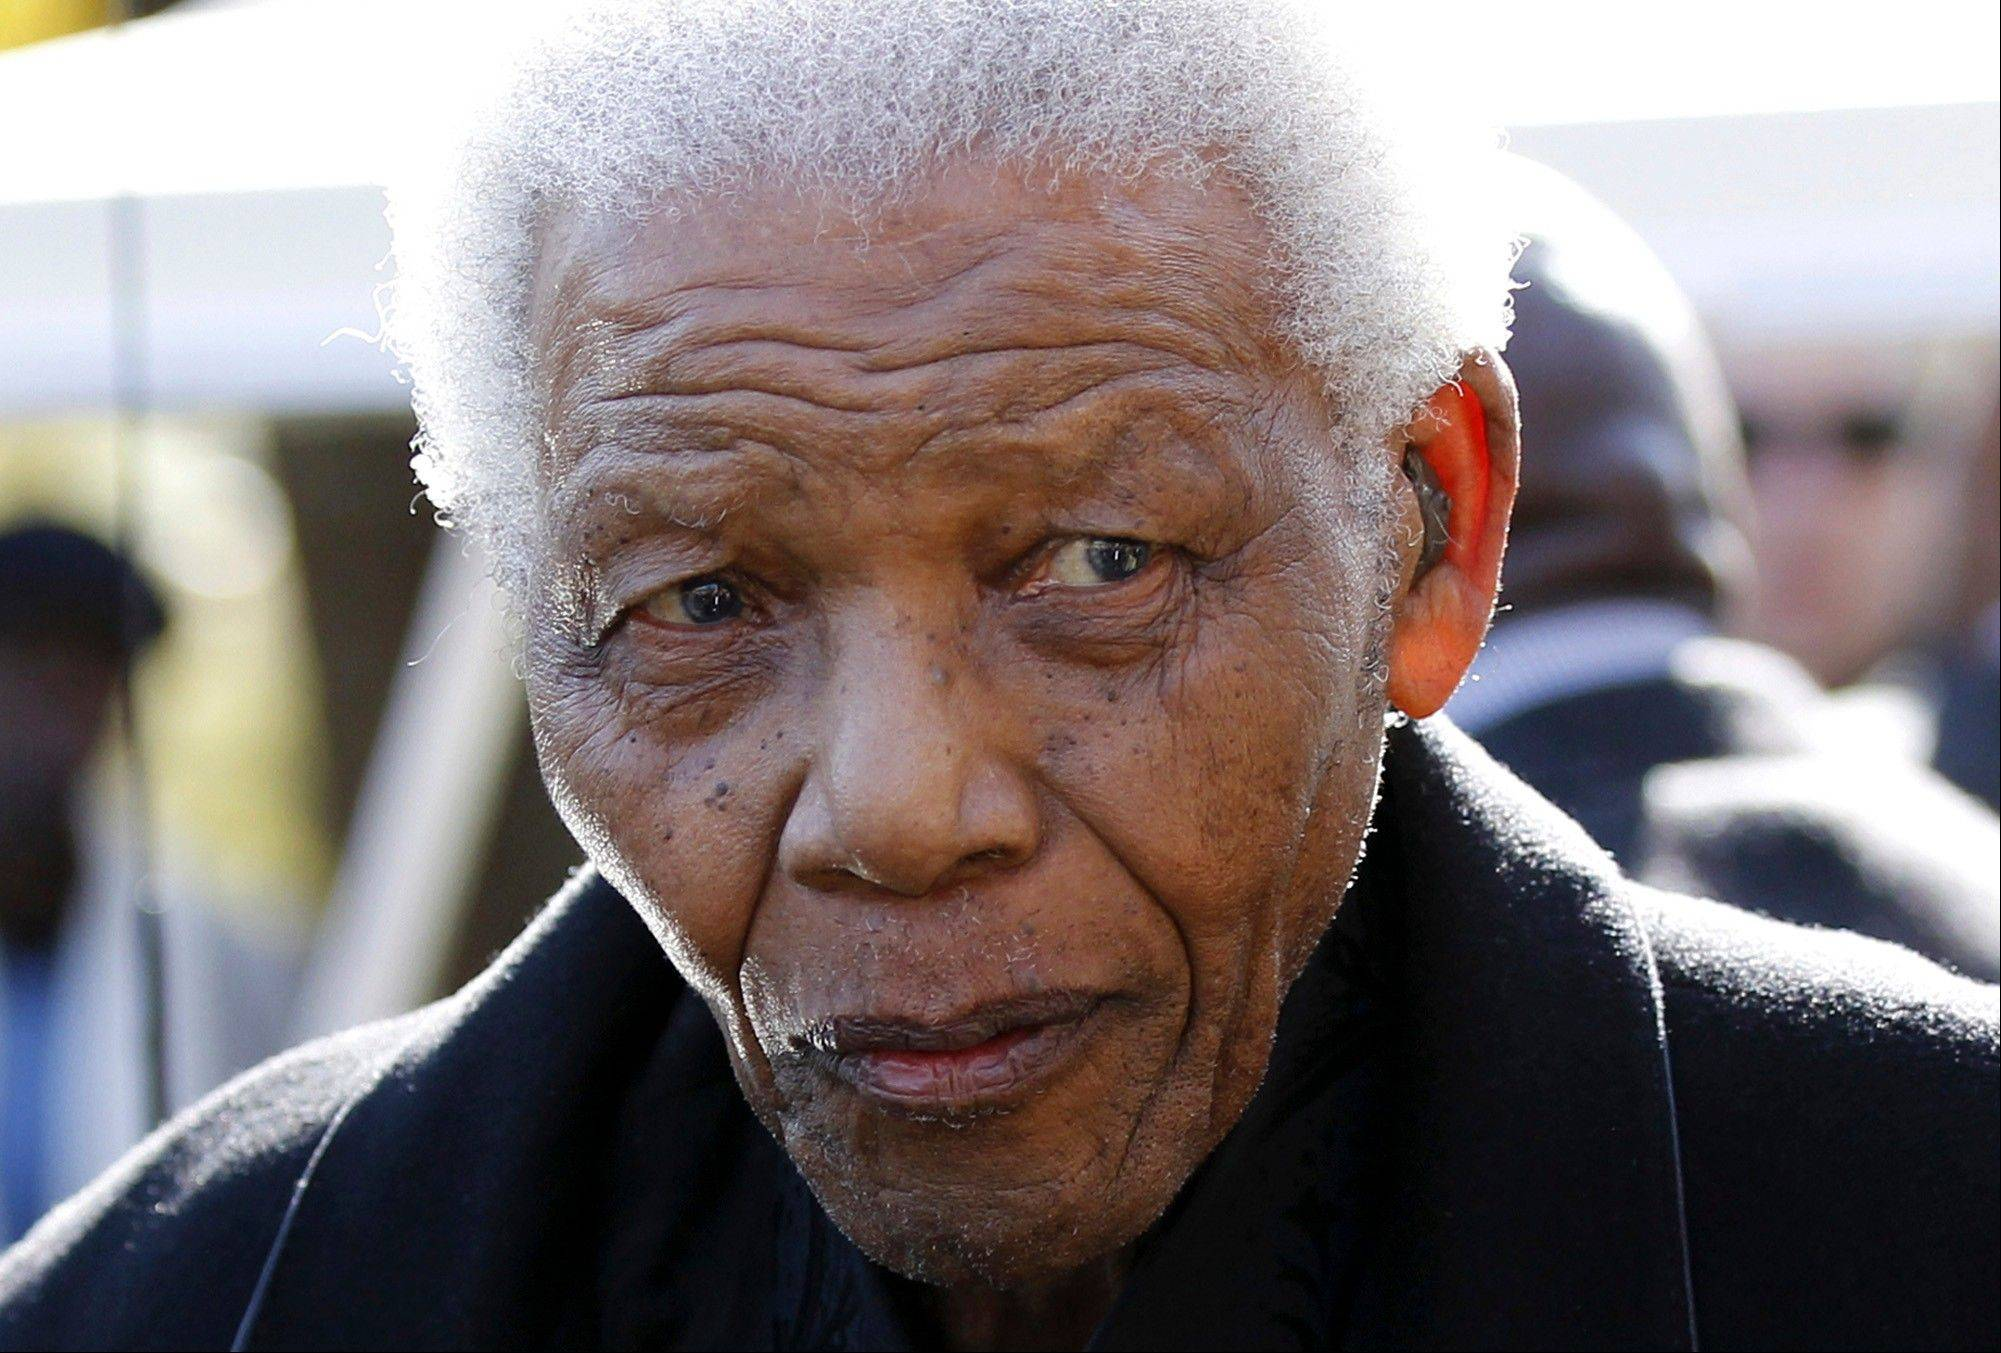 Former President Nelson Mandela is suffering from a recurring lung infection and is responding to treatment. A statement Tuesday, Dec. 11, 2012 from presidential spokesman Mac Maharaj said the 94-year-old anti-apartheid icon is �receiving appropriate treatment and he is responding to the treatment.�